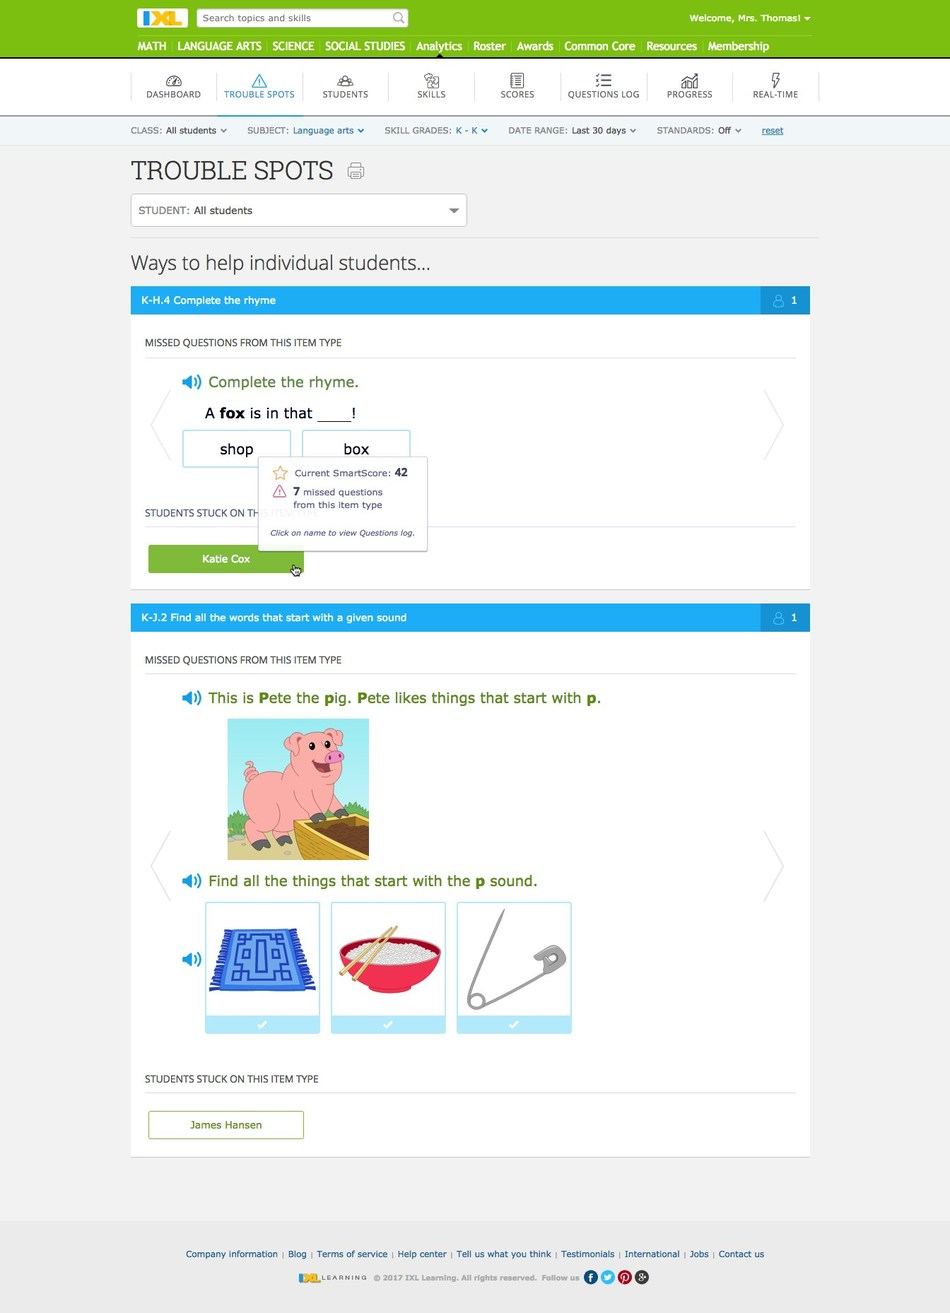 IXL Analytics helps educators take a deep dive into student performance by analyzing trouble spots, grouping students working on the same level, alerting teachers when students need more help, and more.